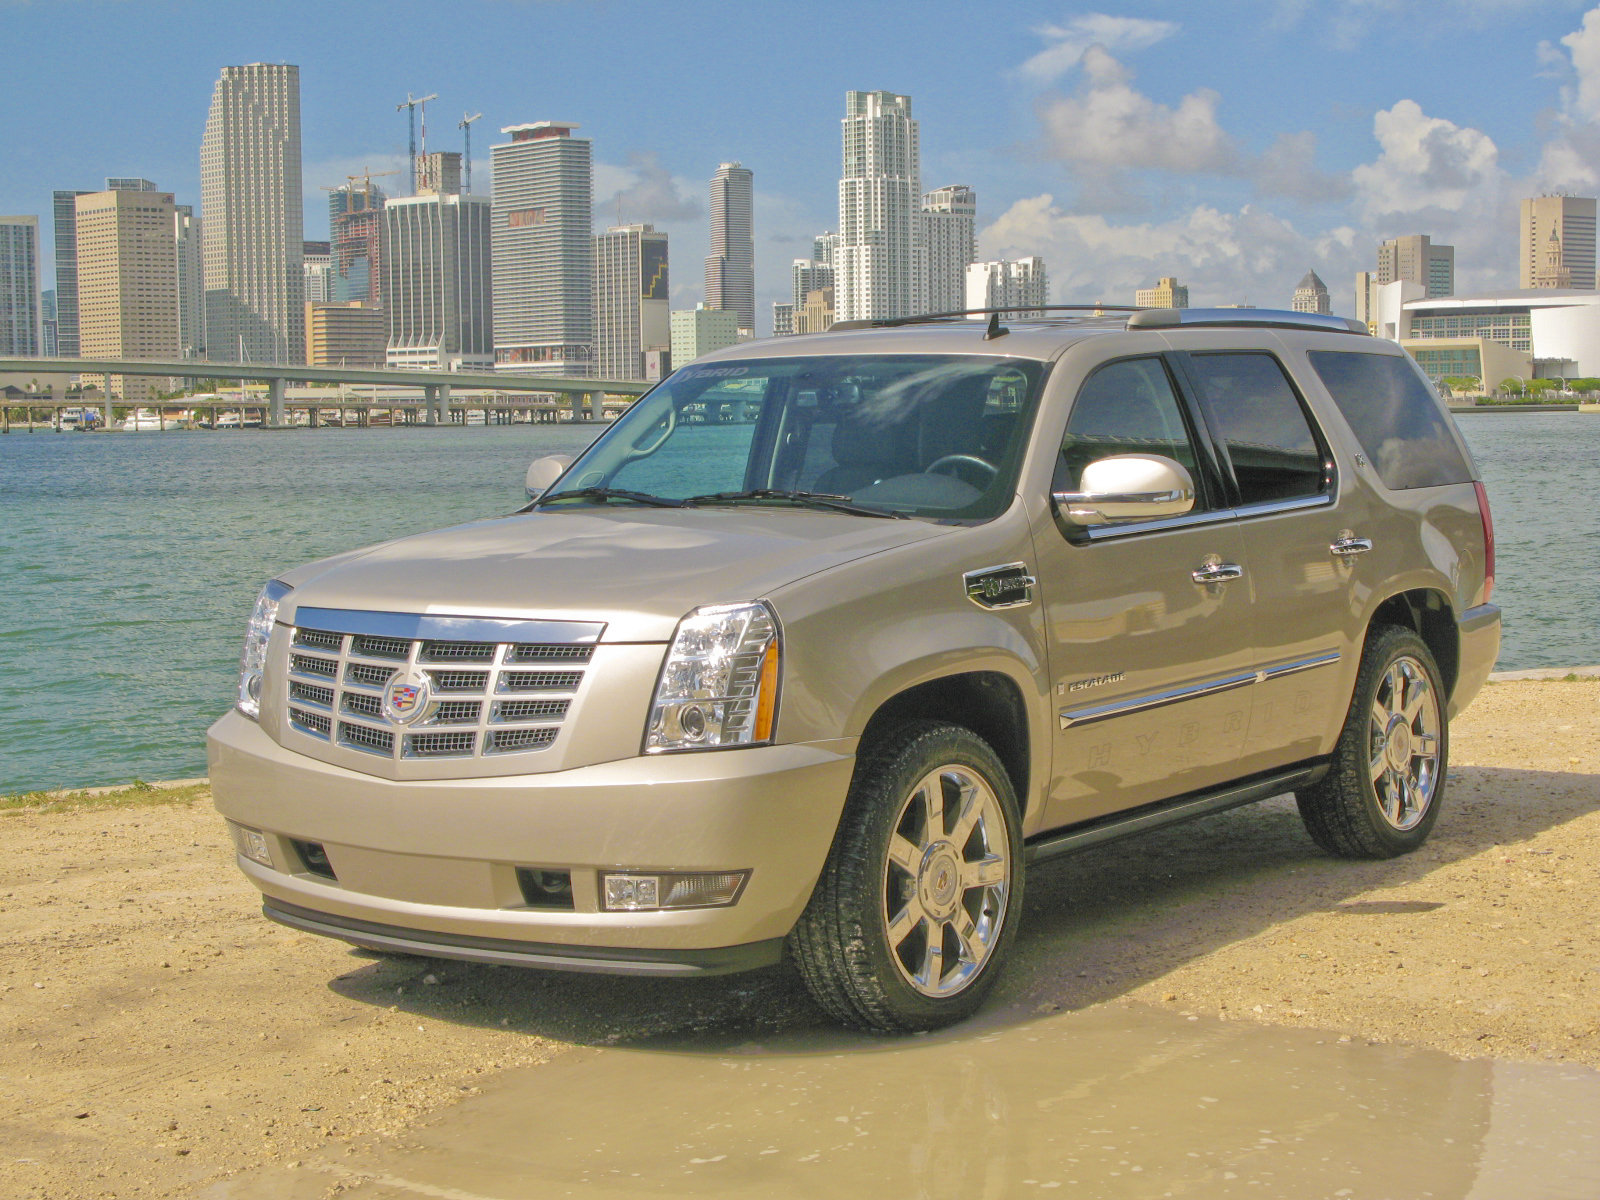 2009 cadillac escalade hybrid picture 304641 car review top speed. Black Bedroom Furniture Sets. Home Design Ideas